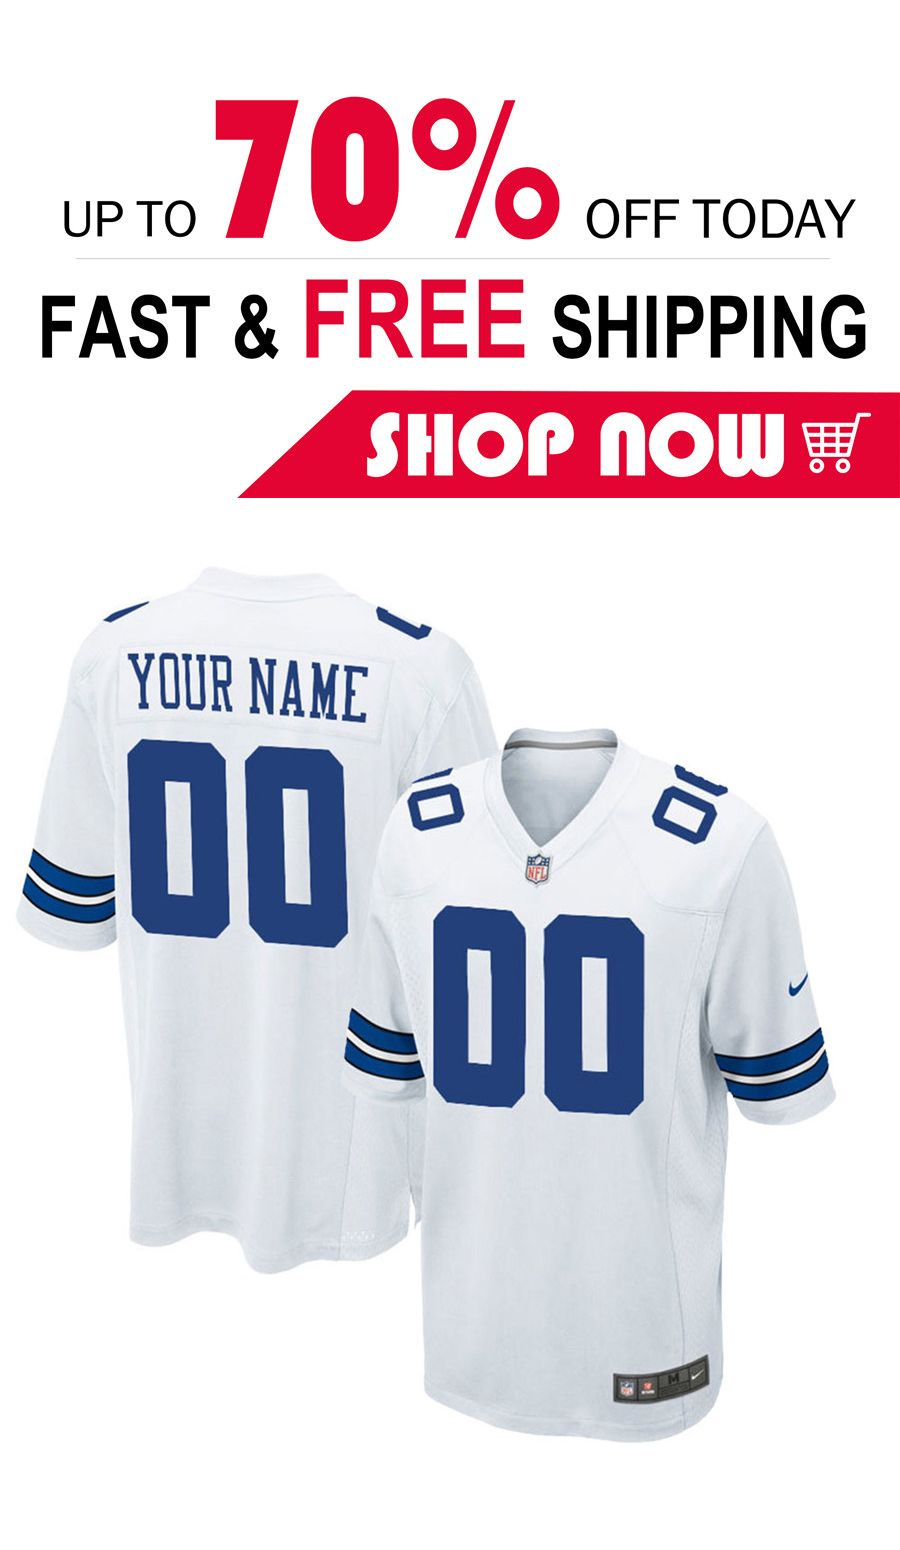 b918cc98c 2019 的 mens Dallas Cowboys cutoms football Game jersey 主题 | NFL Dallas  Cowboys JERSEYS | Dallas cowboys jersey、Nfl dallas cowboys 和 Nfl jerseys